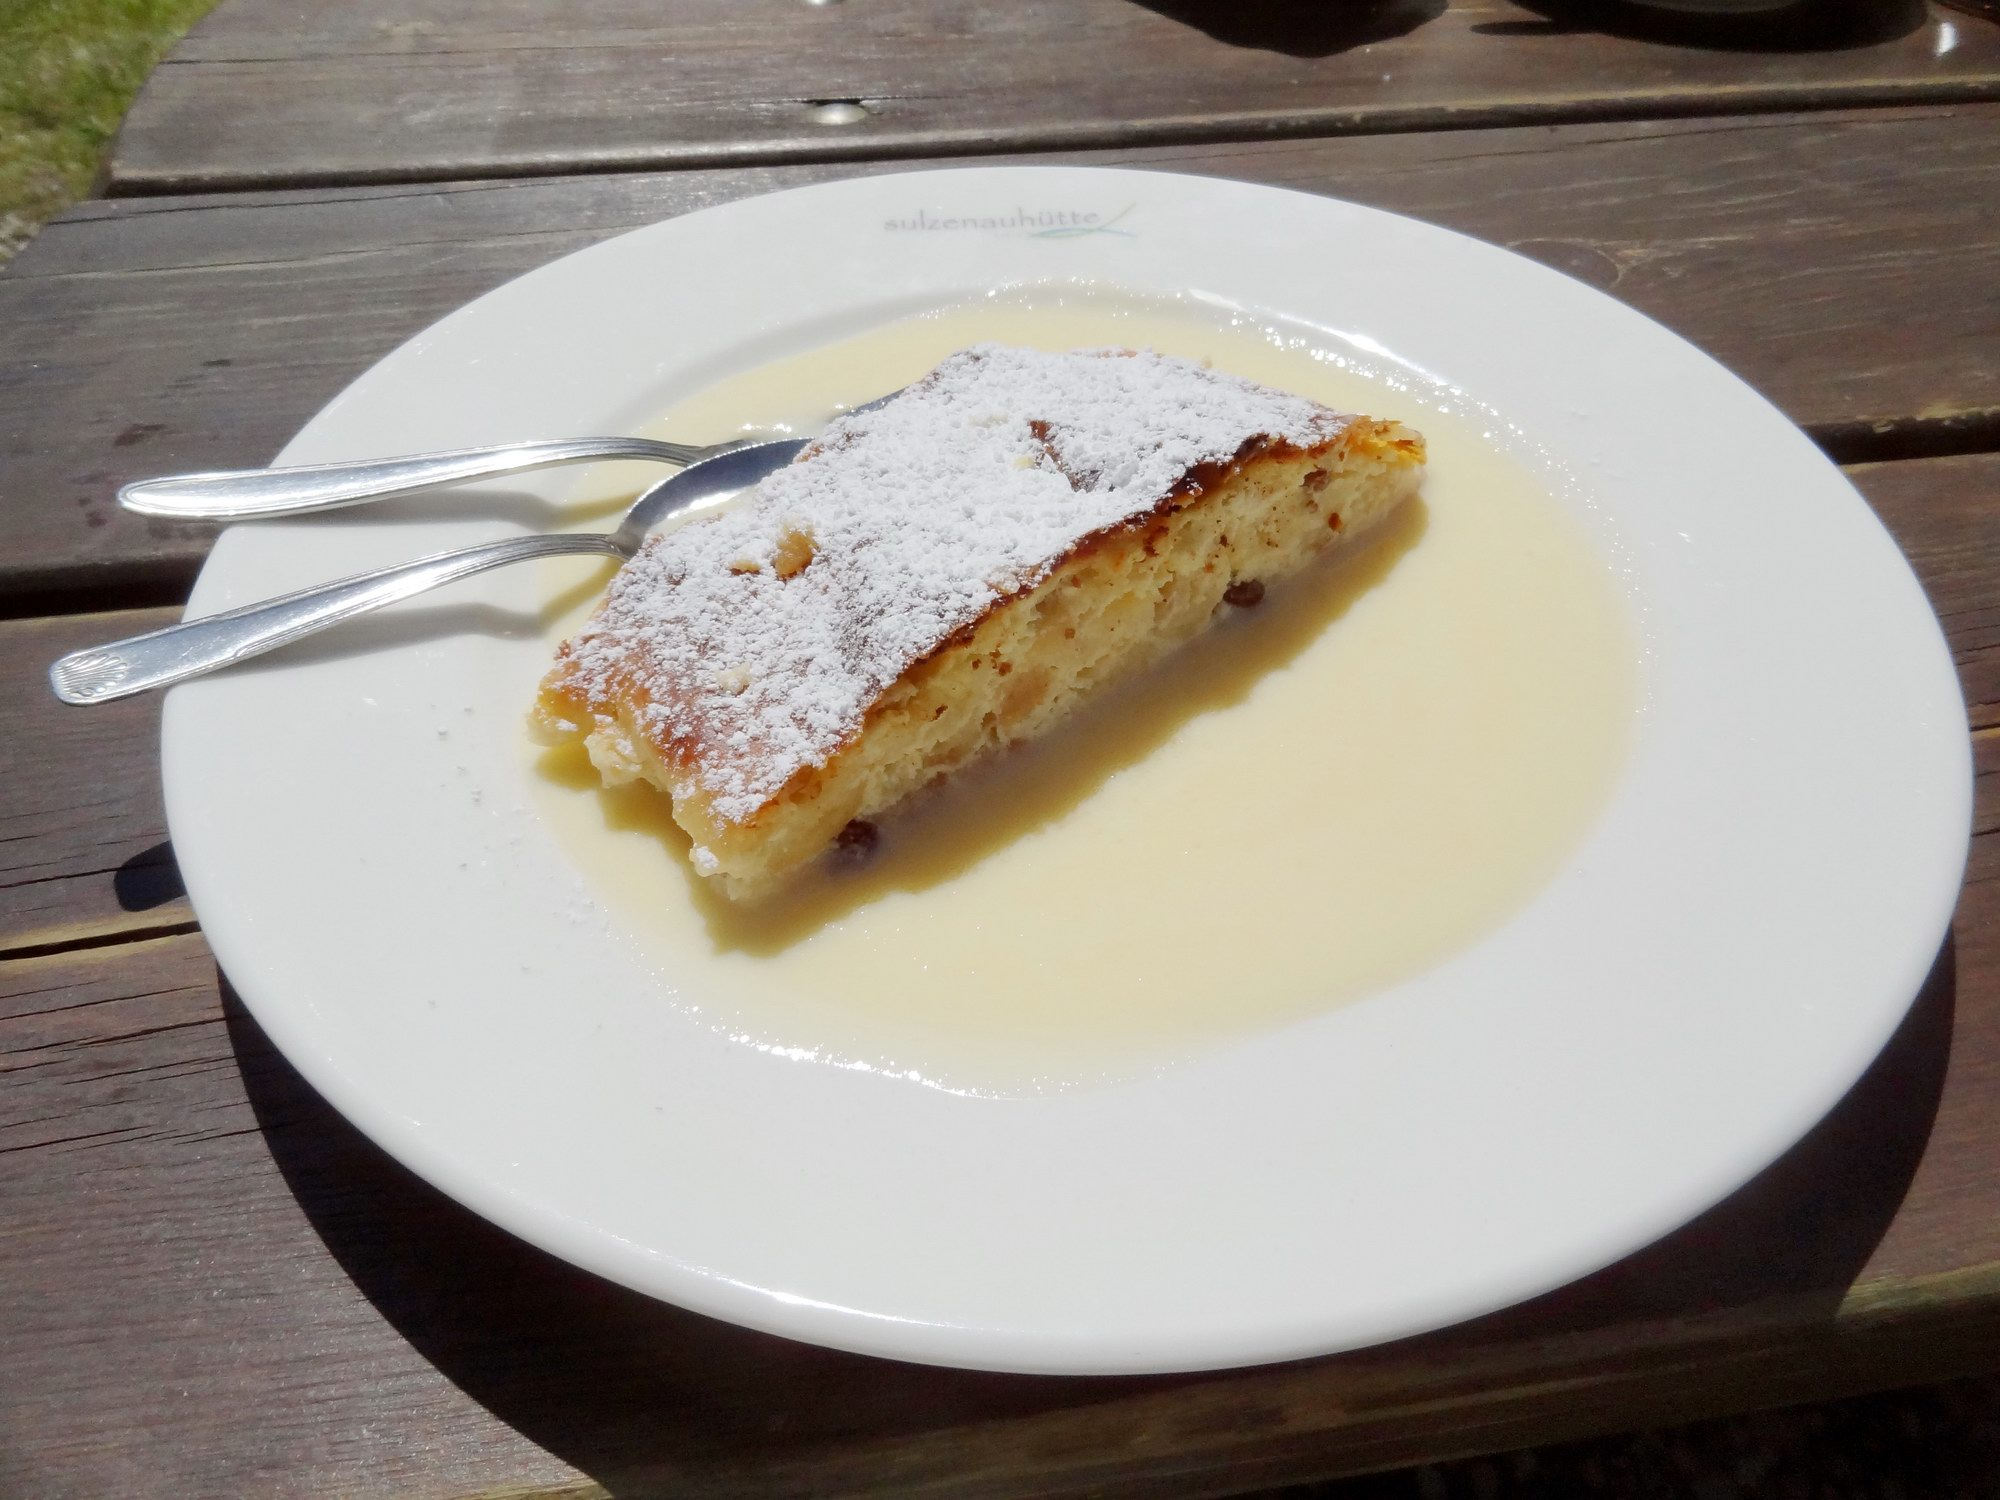 Homemade creamy cottage cheese strudel at Sulzenau hut - Stubai High Trail